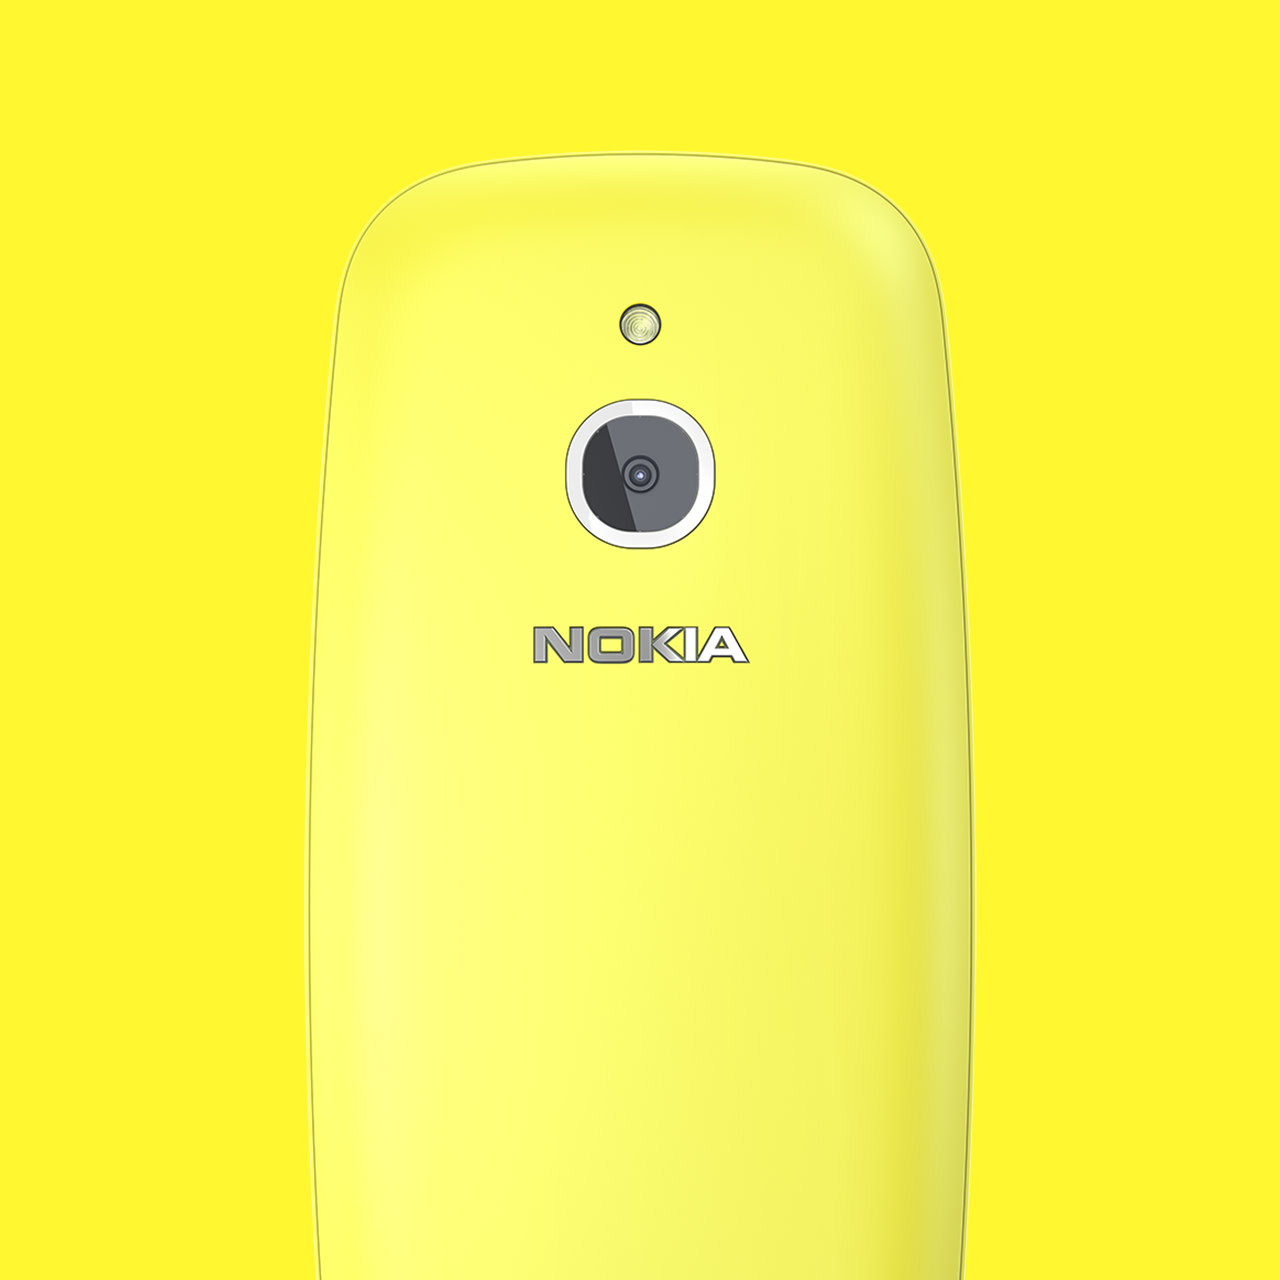 nokia_3310_3G-design_block-yellow.jpg